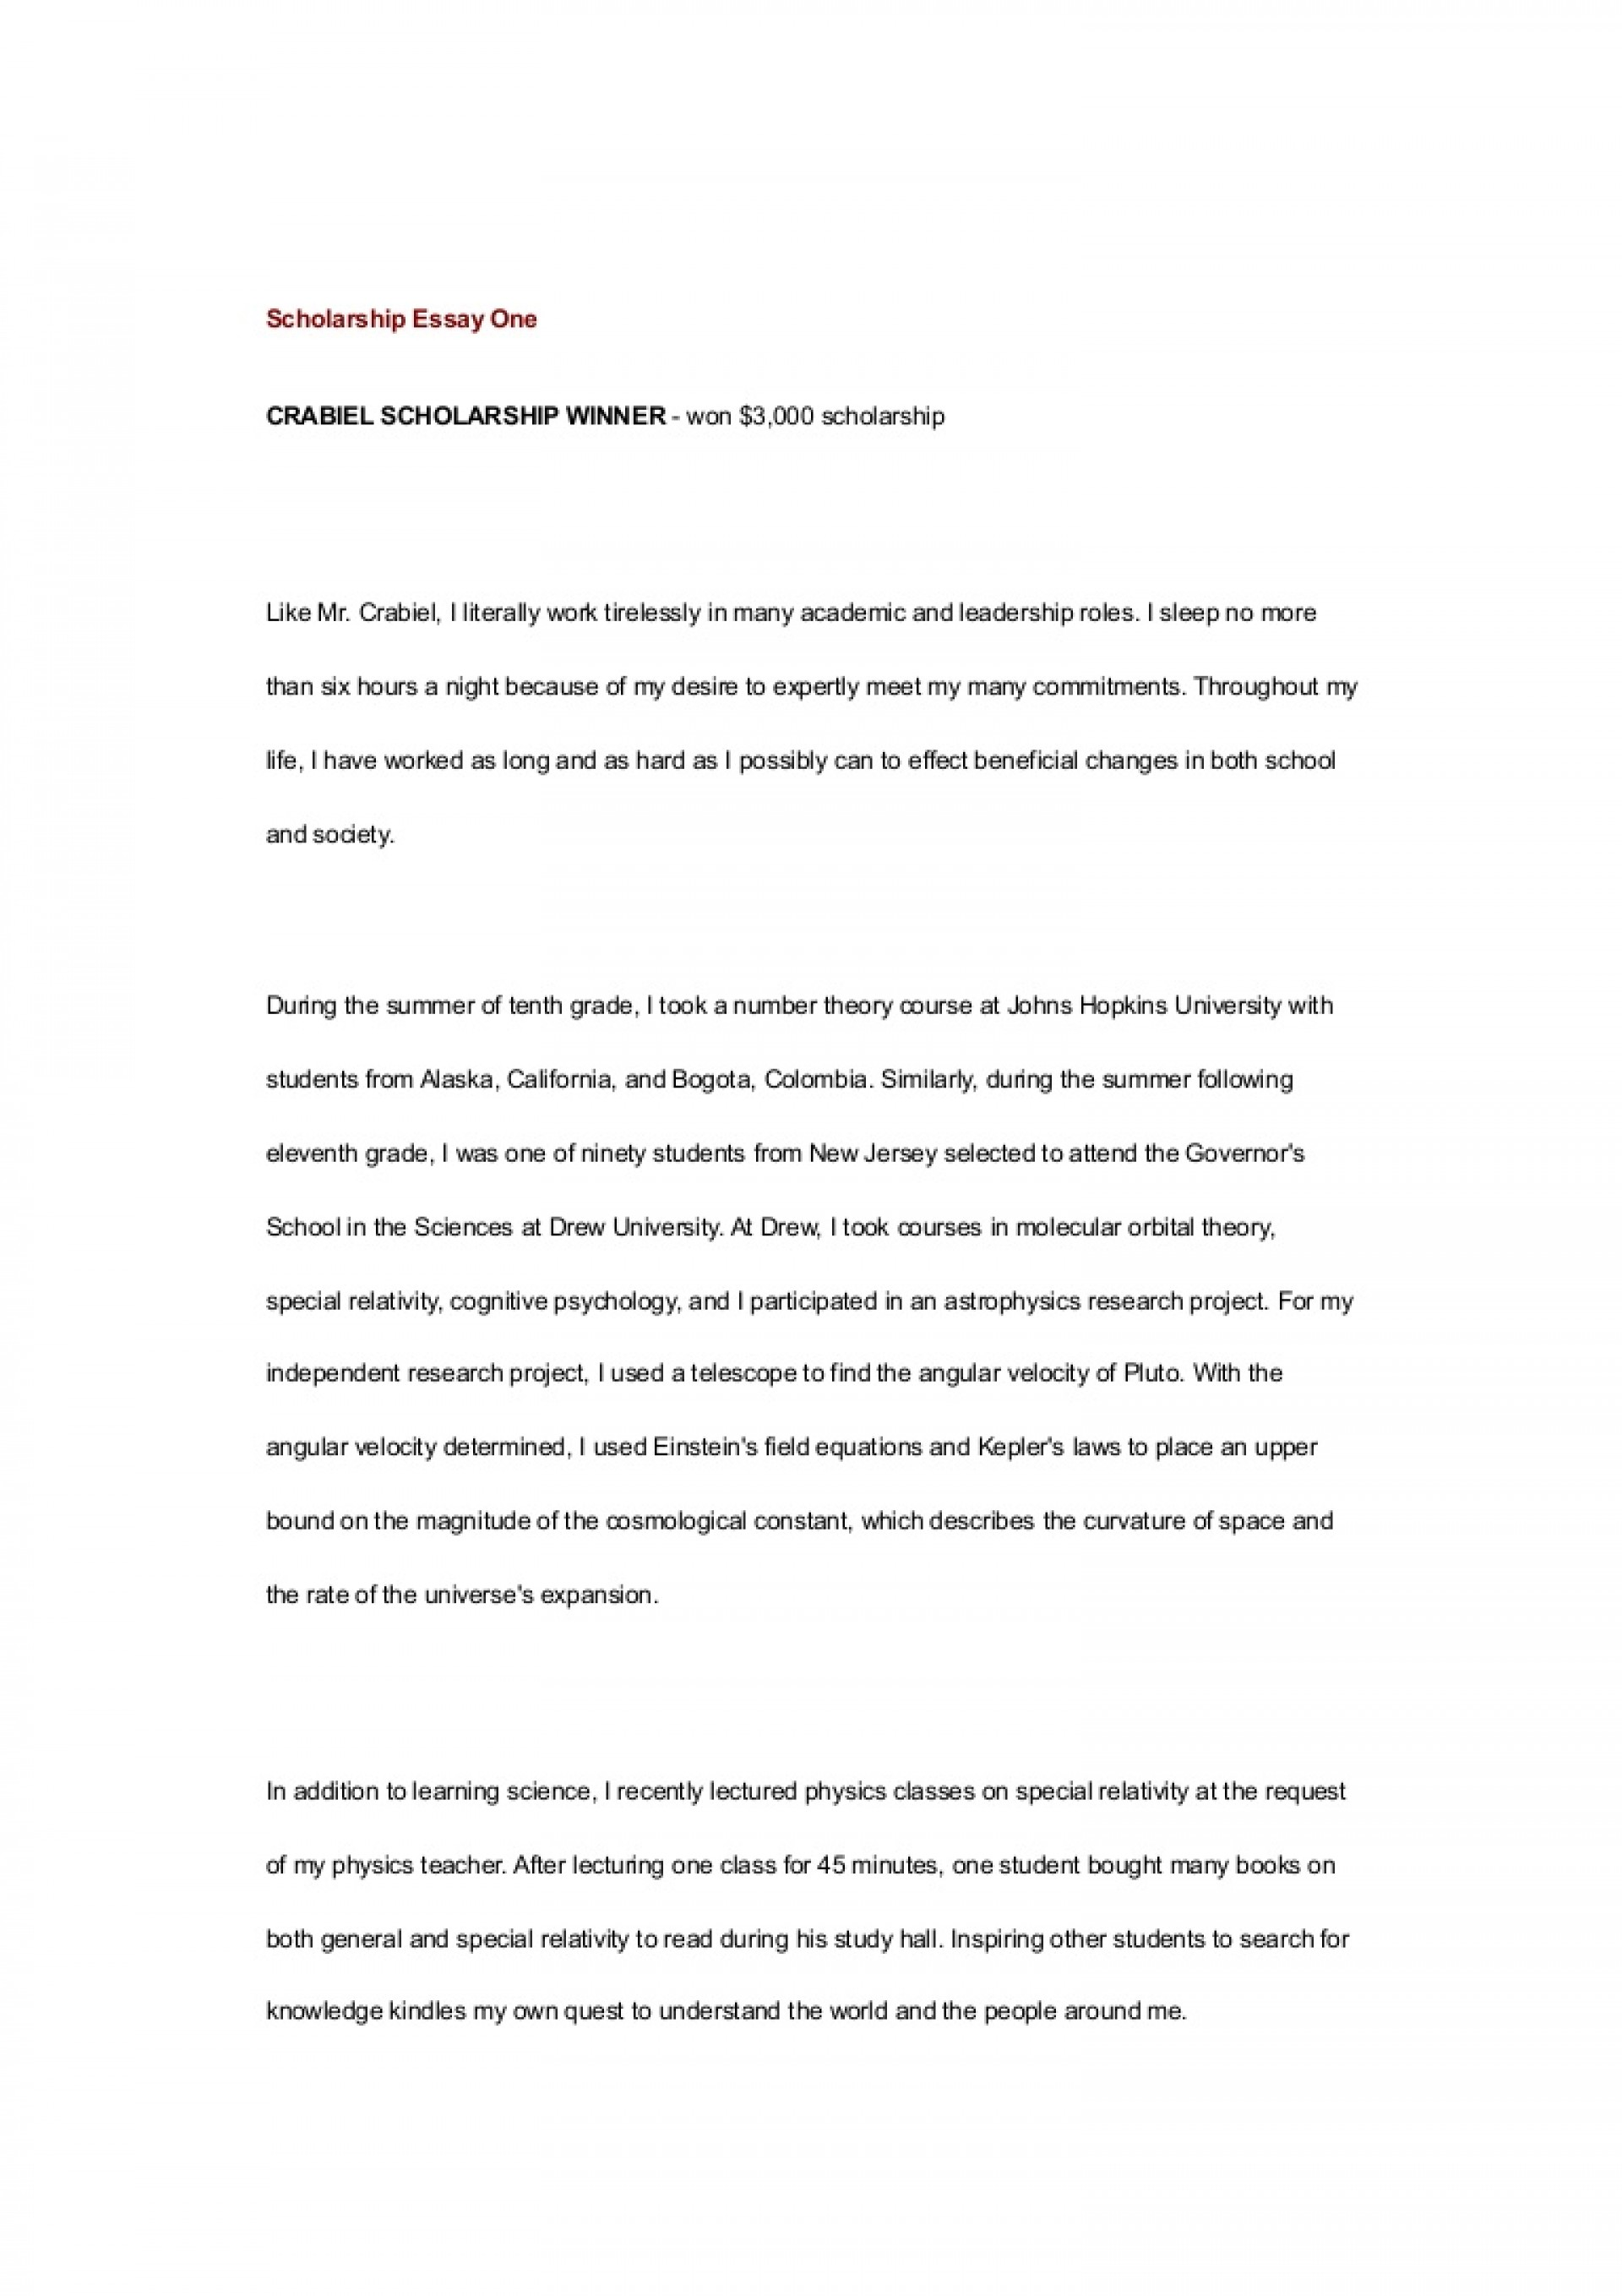 006 Scholarshipessayone Phpapp01 Thumbnail Essay Example Sample For Financial Need Unforgettable Scholarship 1920